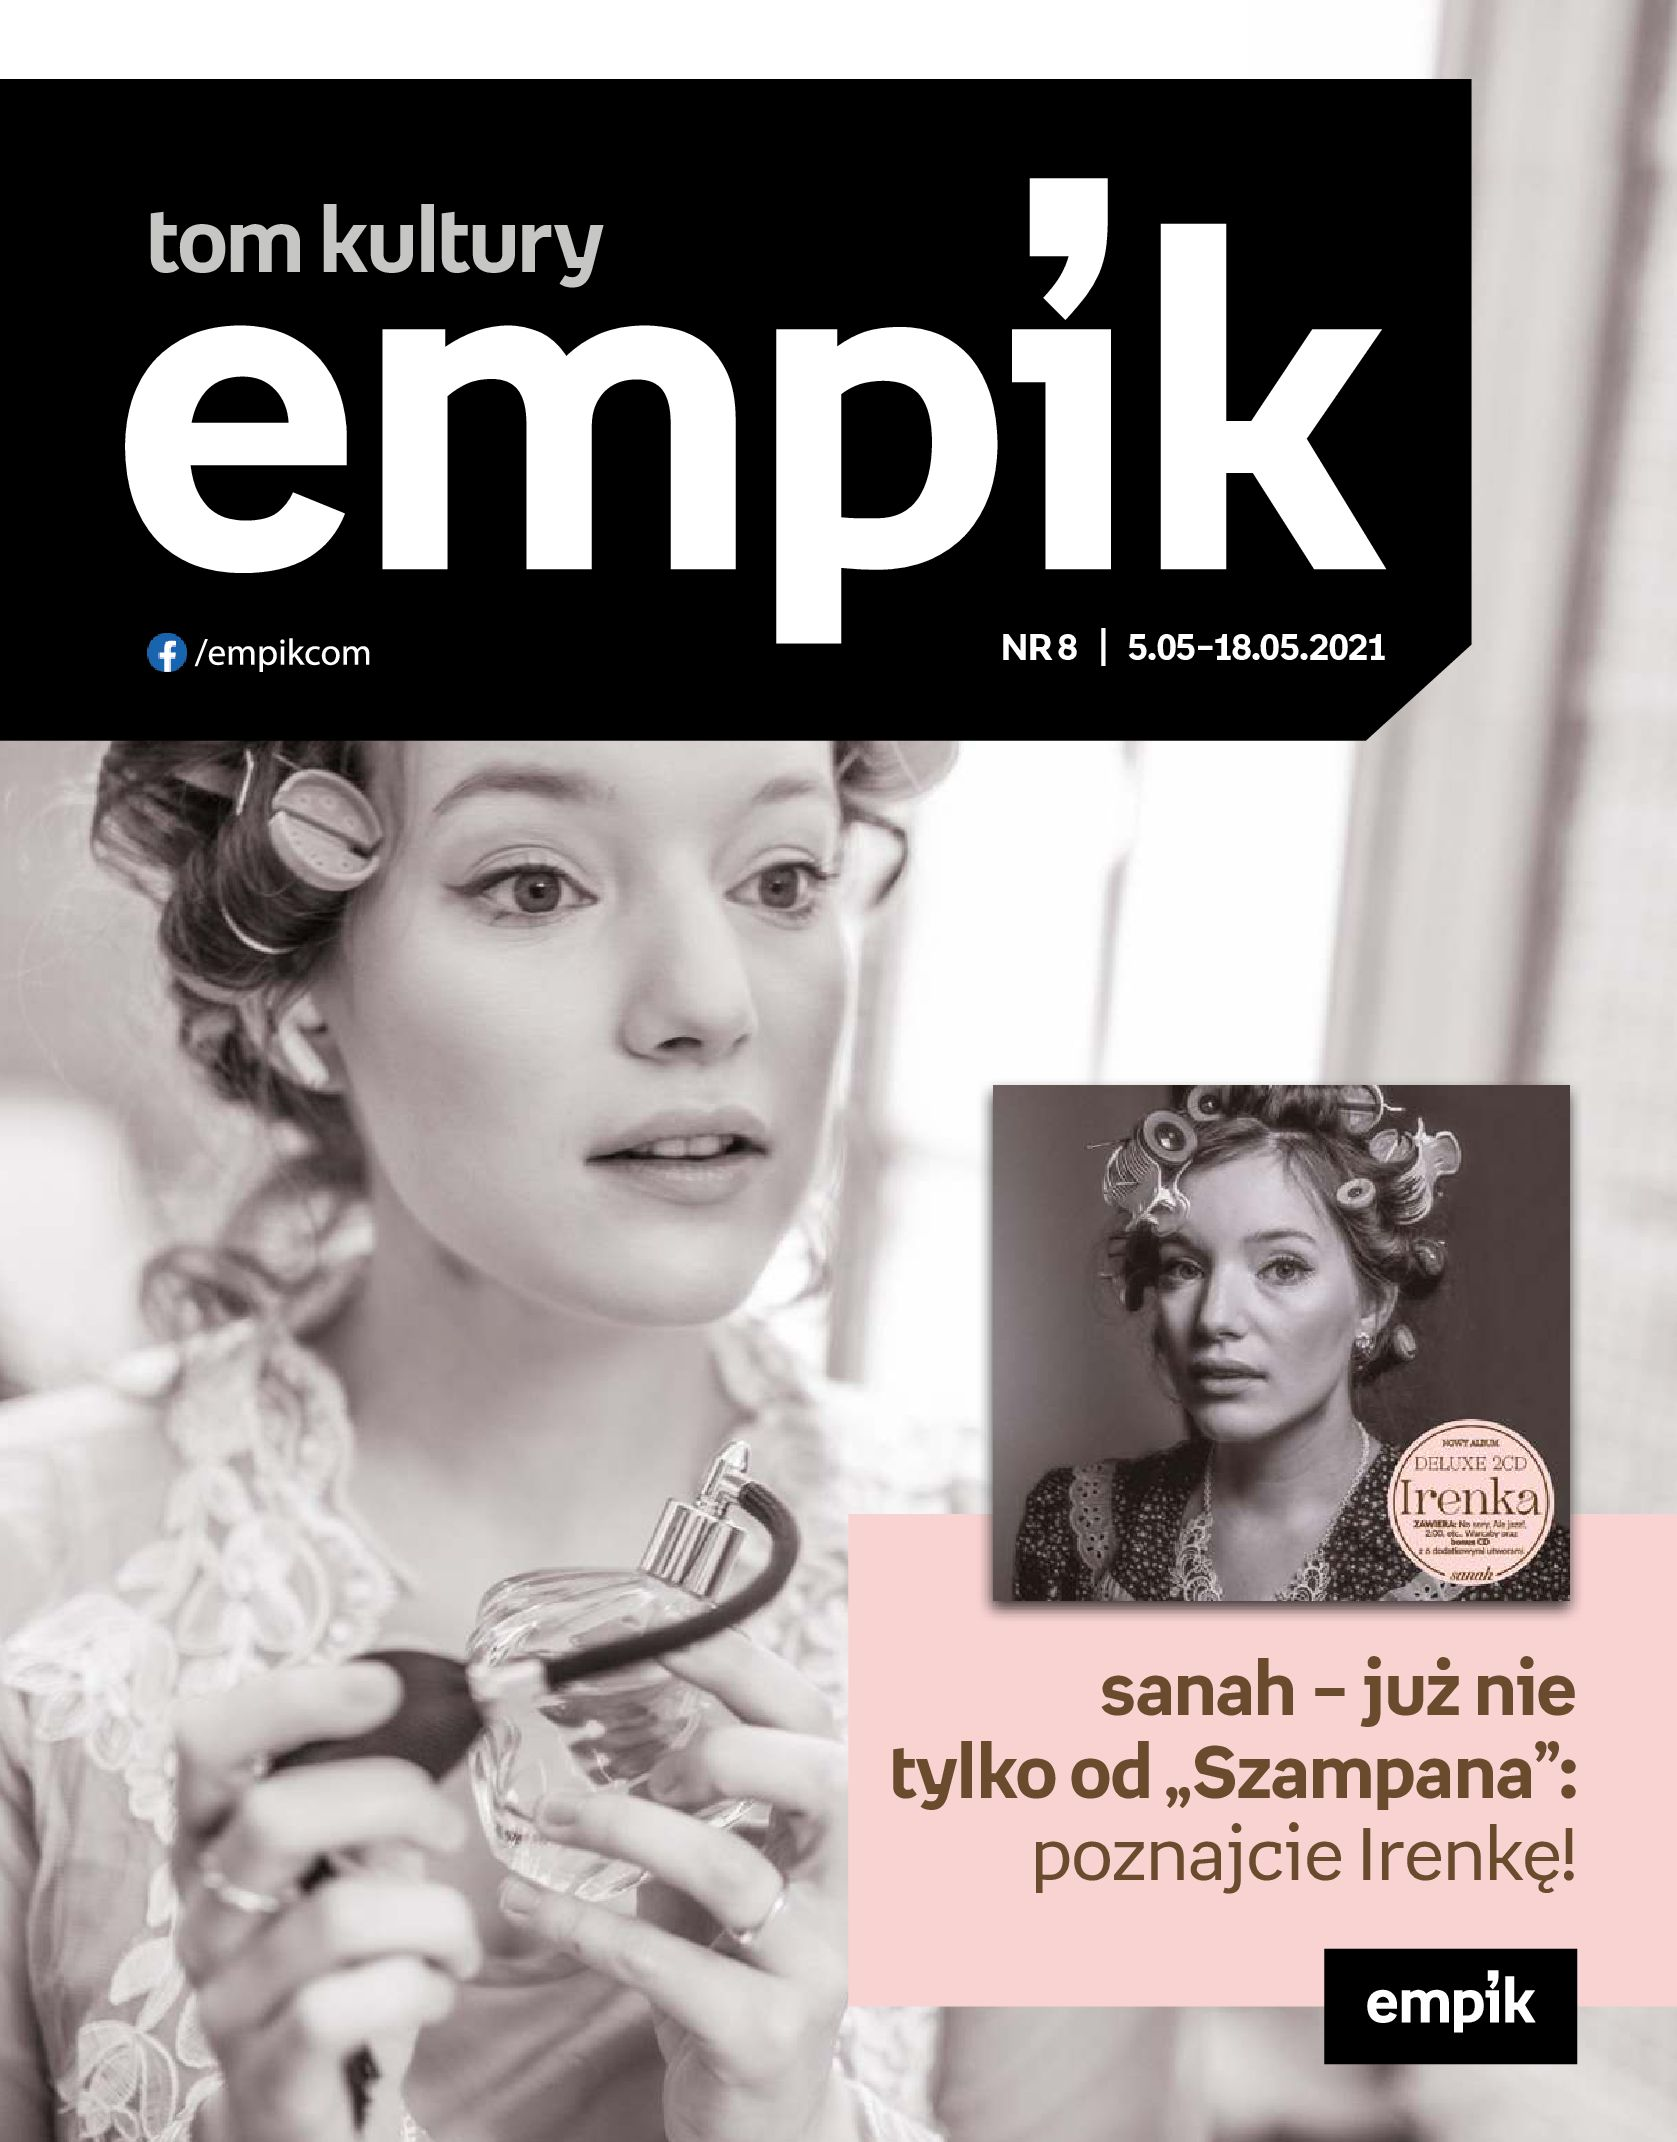 Empik:  Tom kultury 04.05.2021